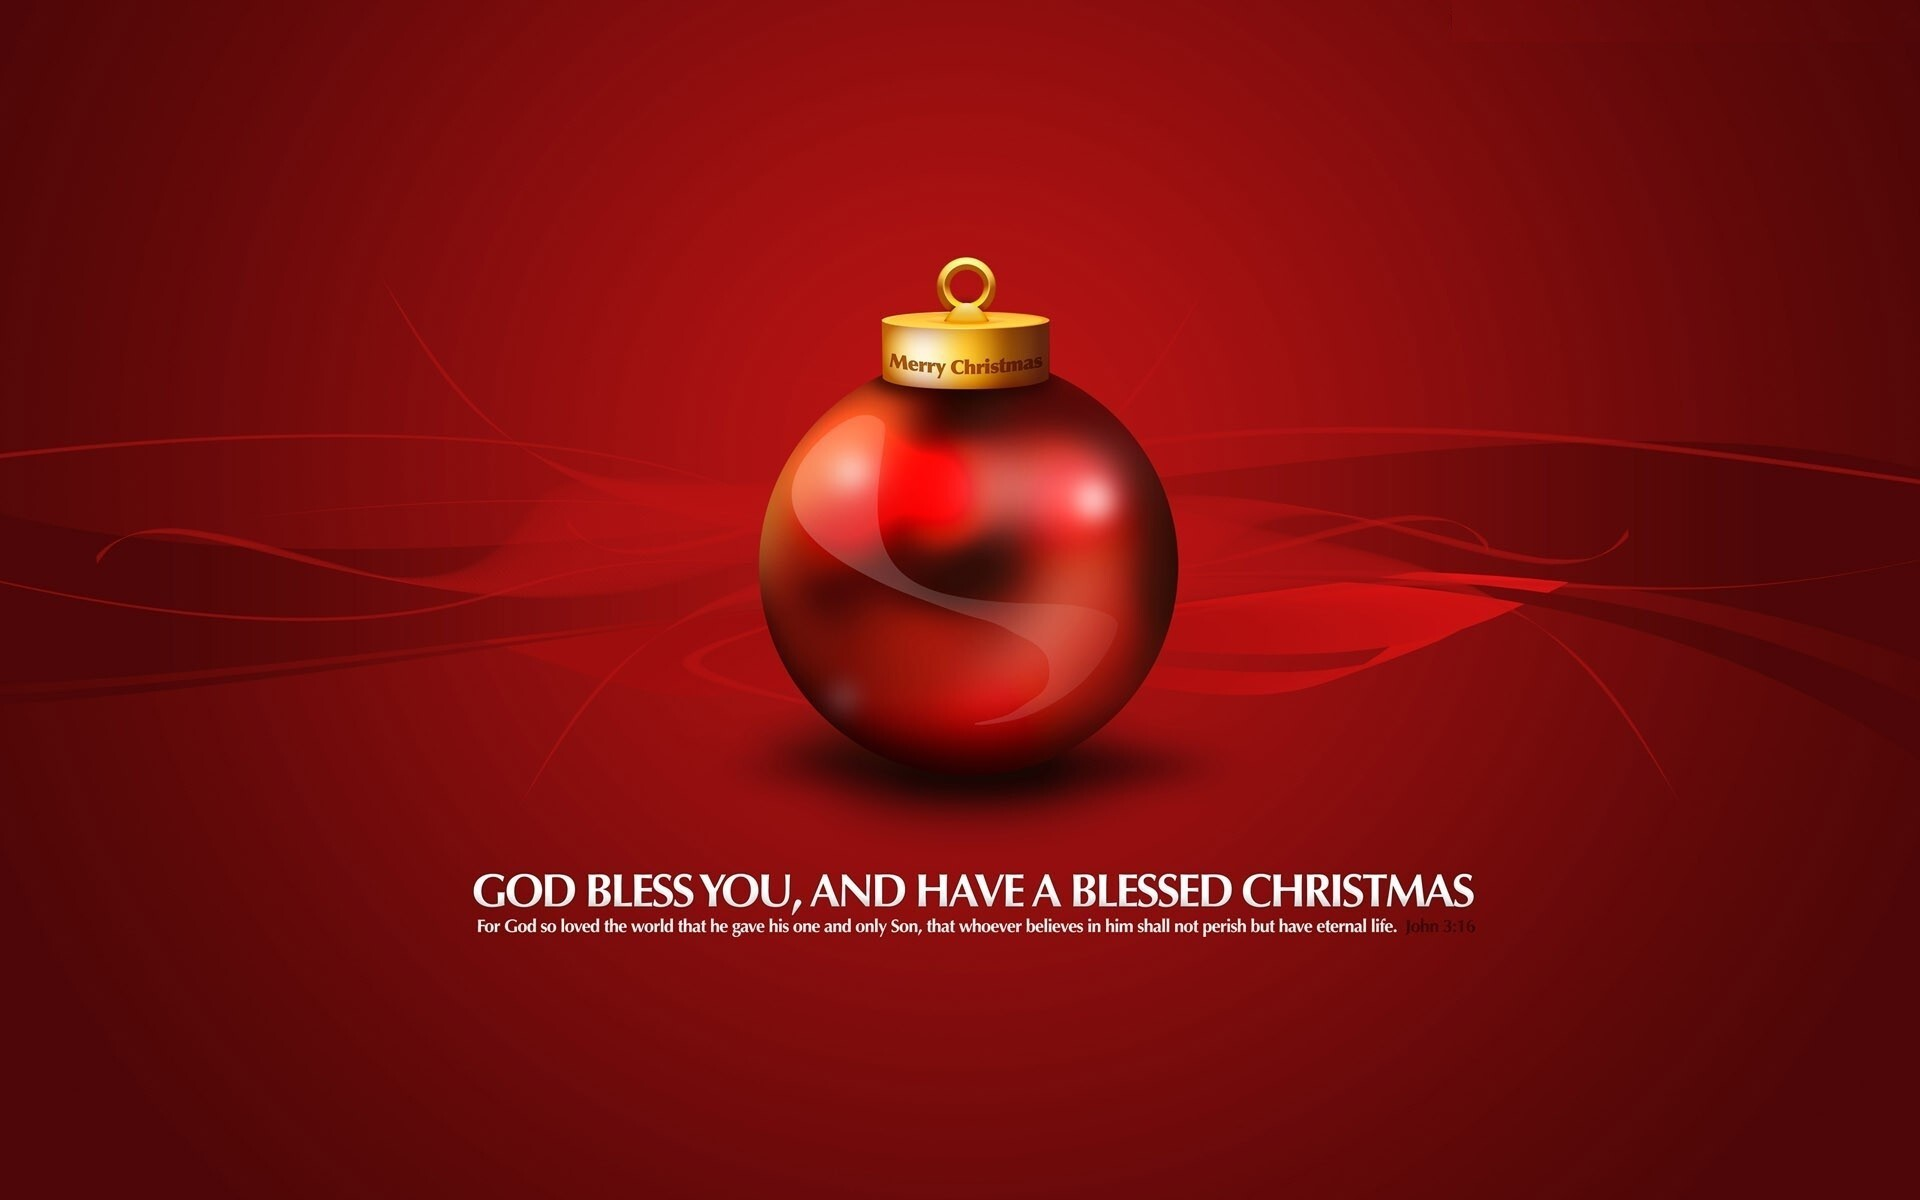 God Bless You Merry Christmas Quotes Photo Background